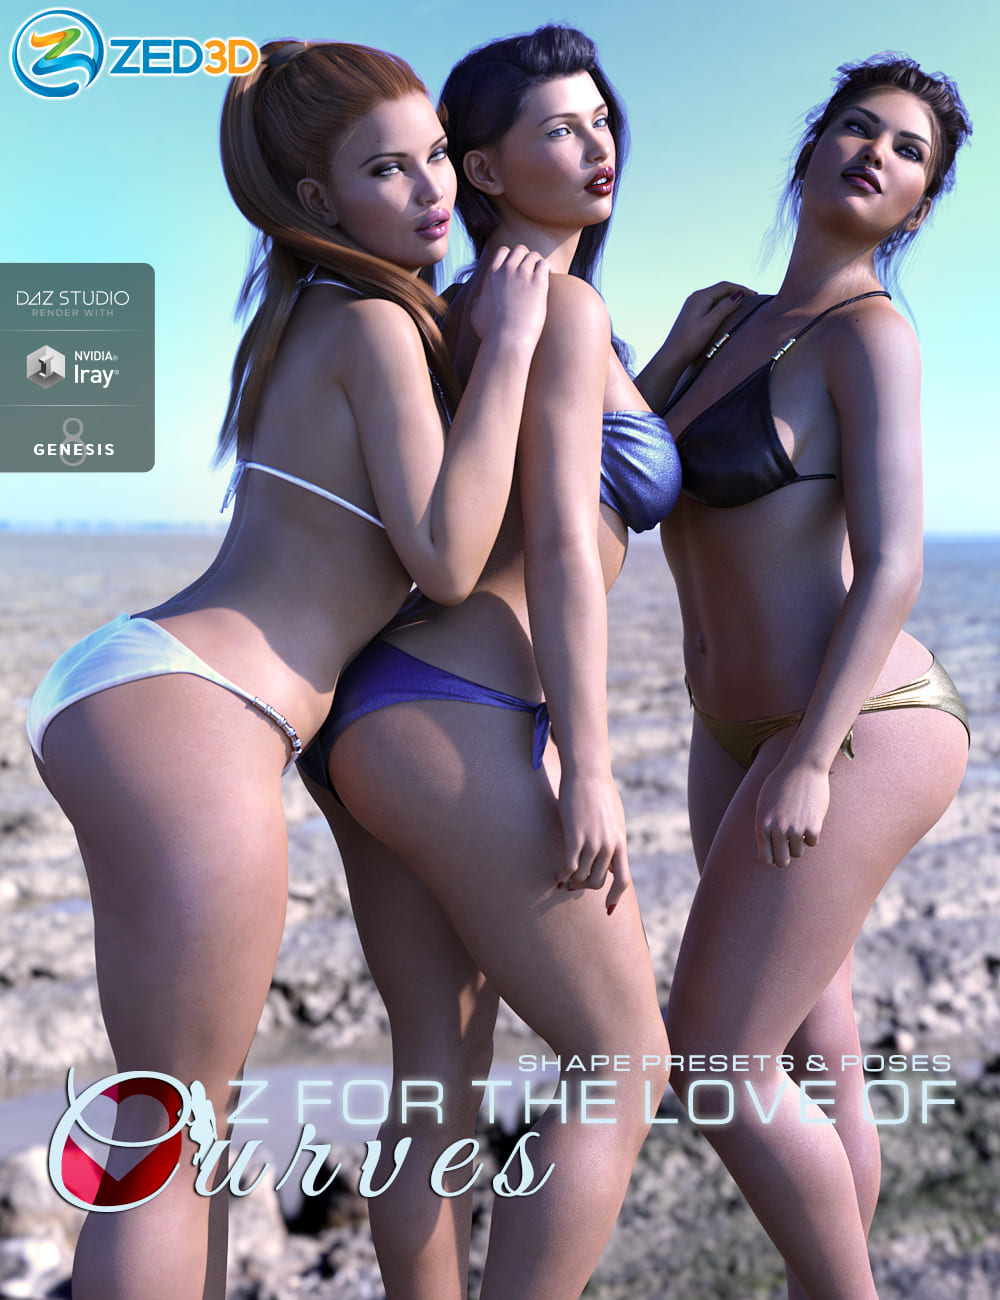 Z For the Love of Curves Shapes and Poses_DAZ3D下载站